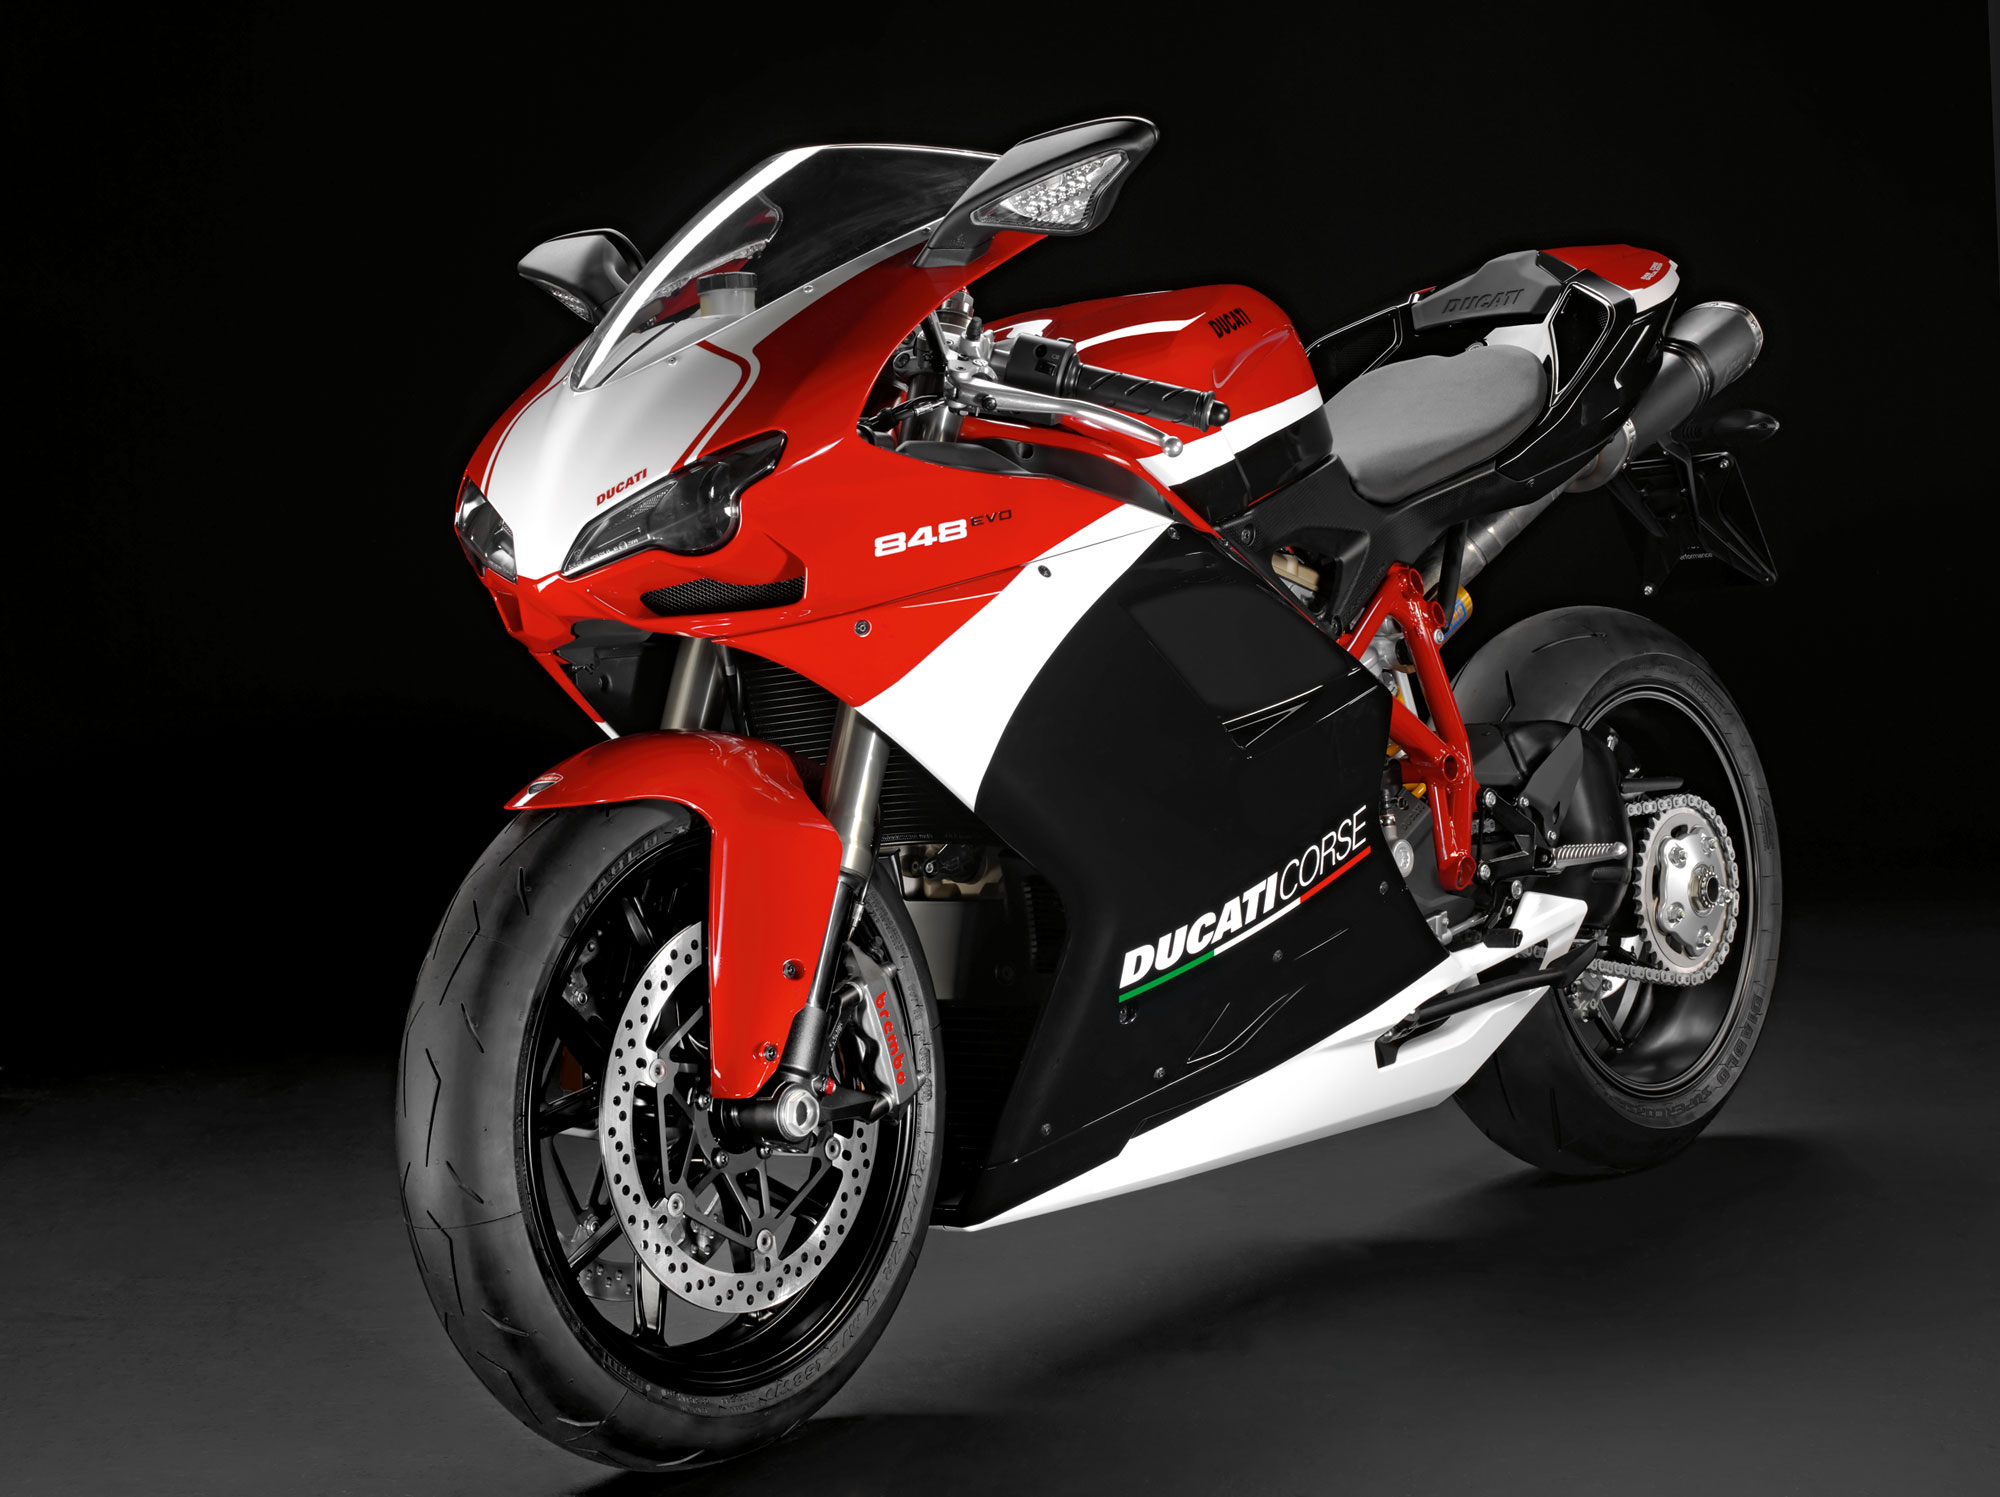 Remarkable 2012 Ducati 848 Evo Corse Se Review Pabps2019 Chair Design Images Pabps2019Com